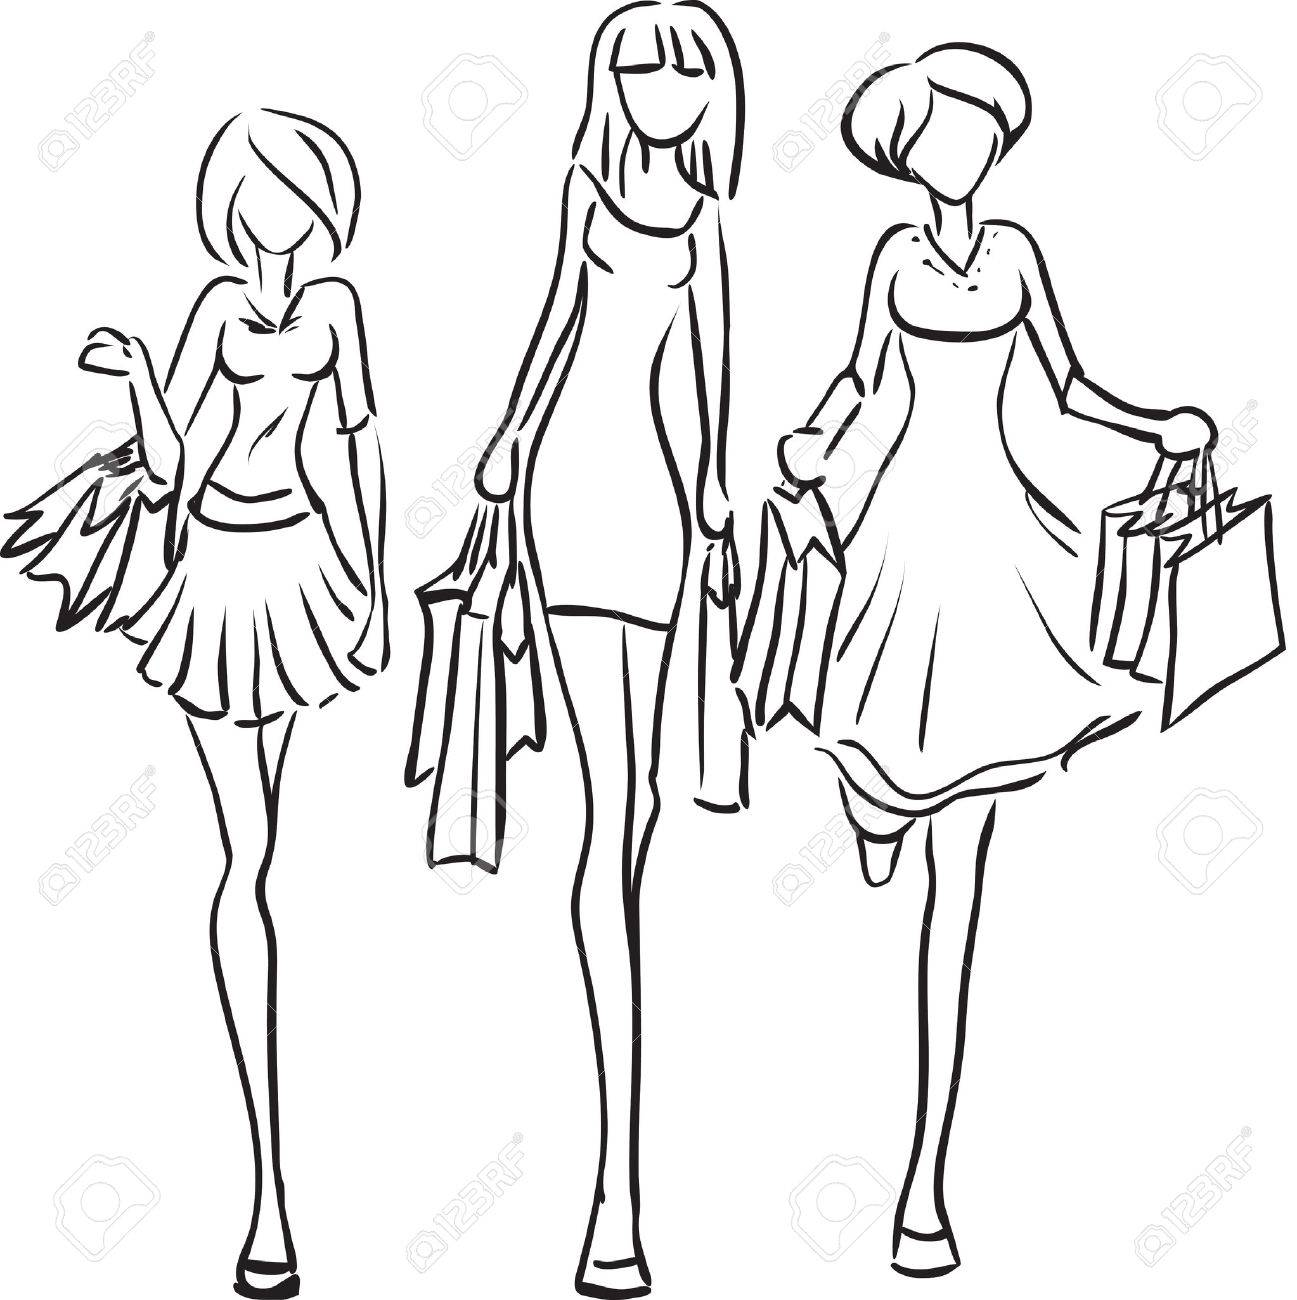 1297x1300 Vector Picture With Three Girls Going Shopping Royalty Free